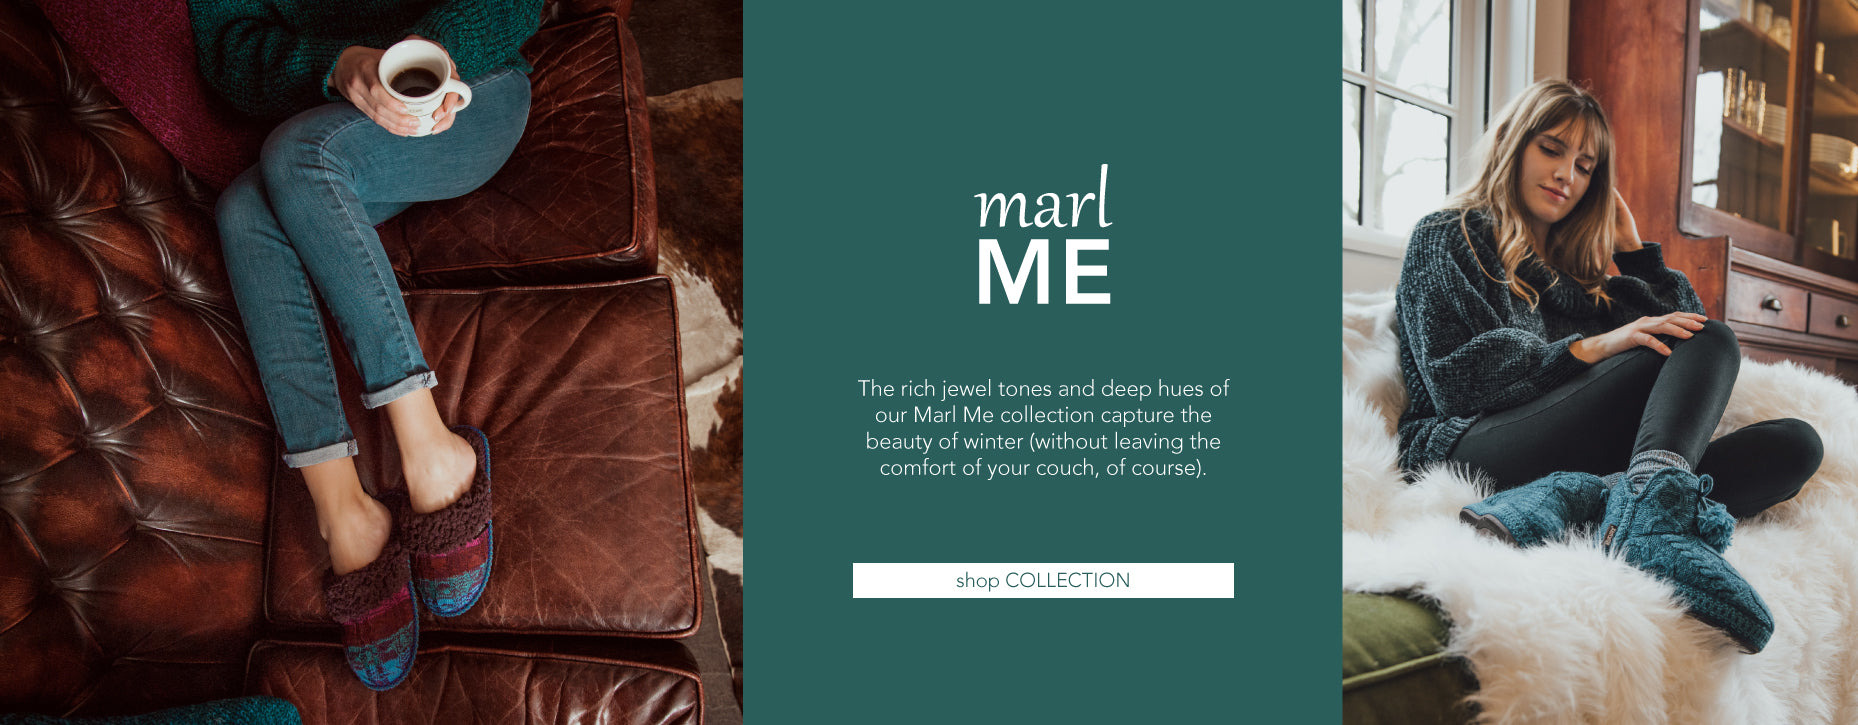 Marl Me Shop Collection